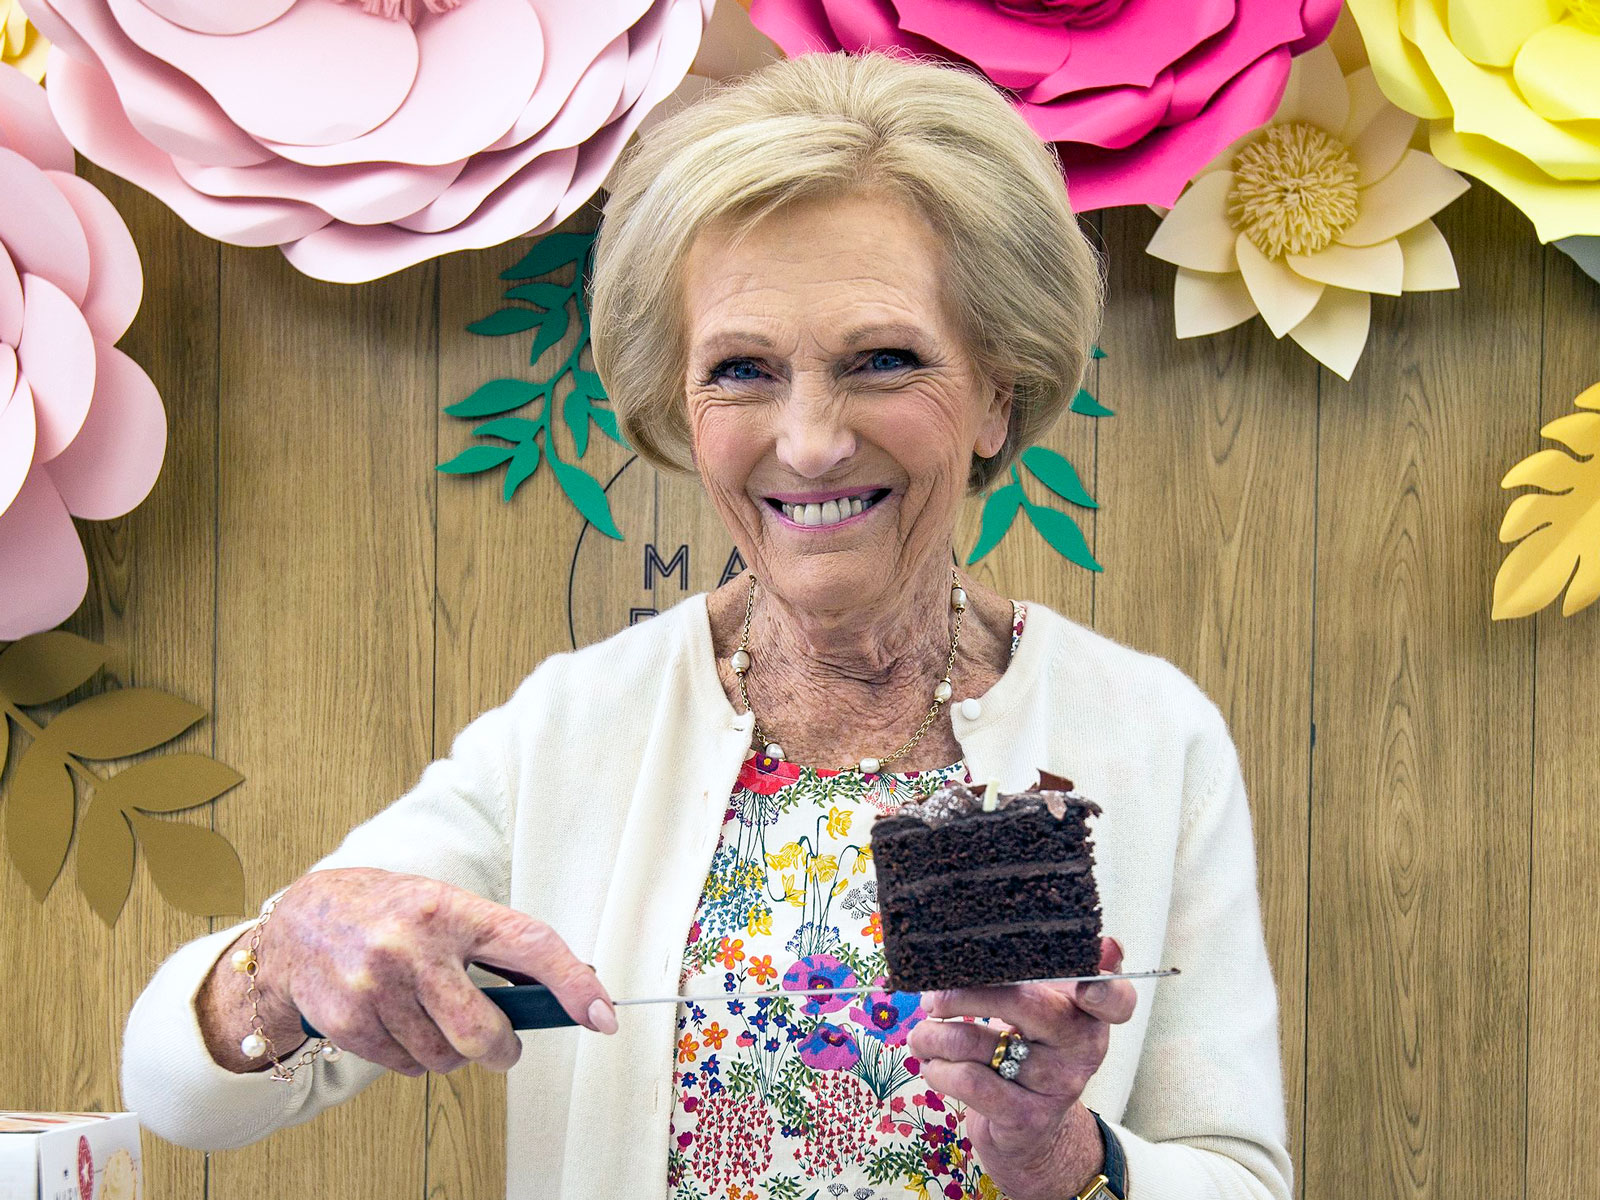 mary-berry-spongecake-shortcut-FT-BLOG0618.jpg